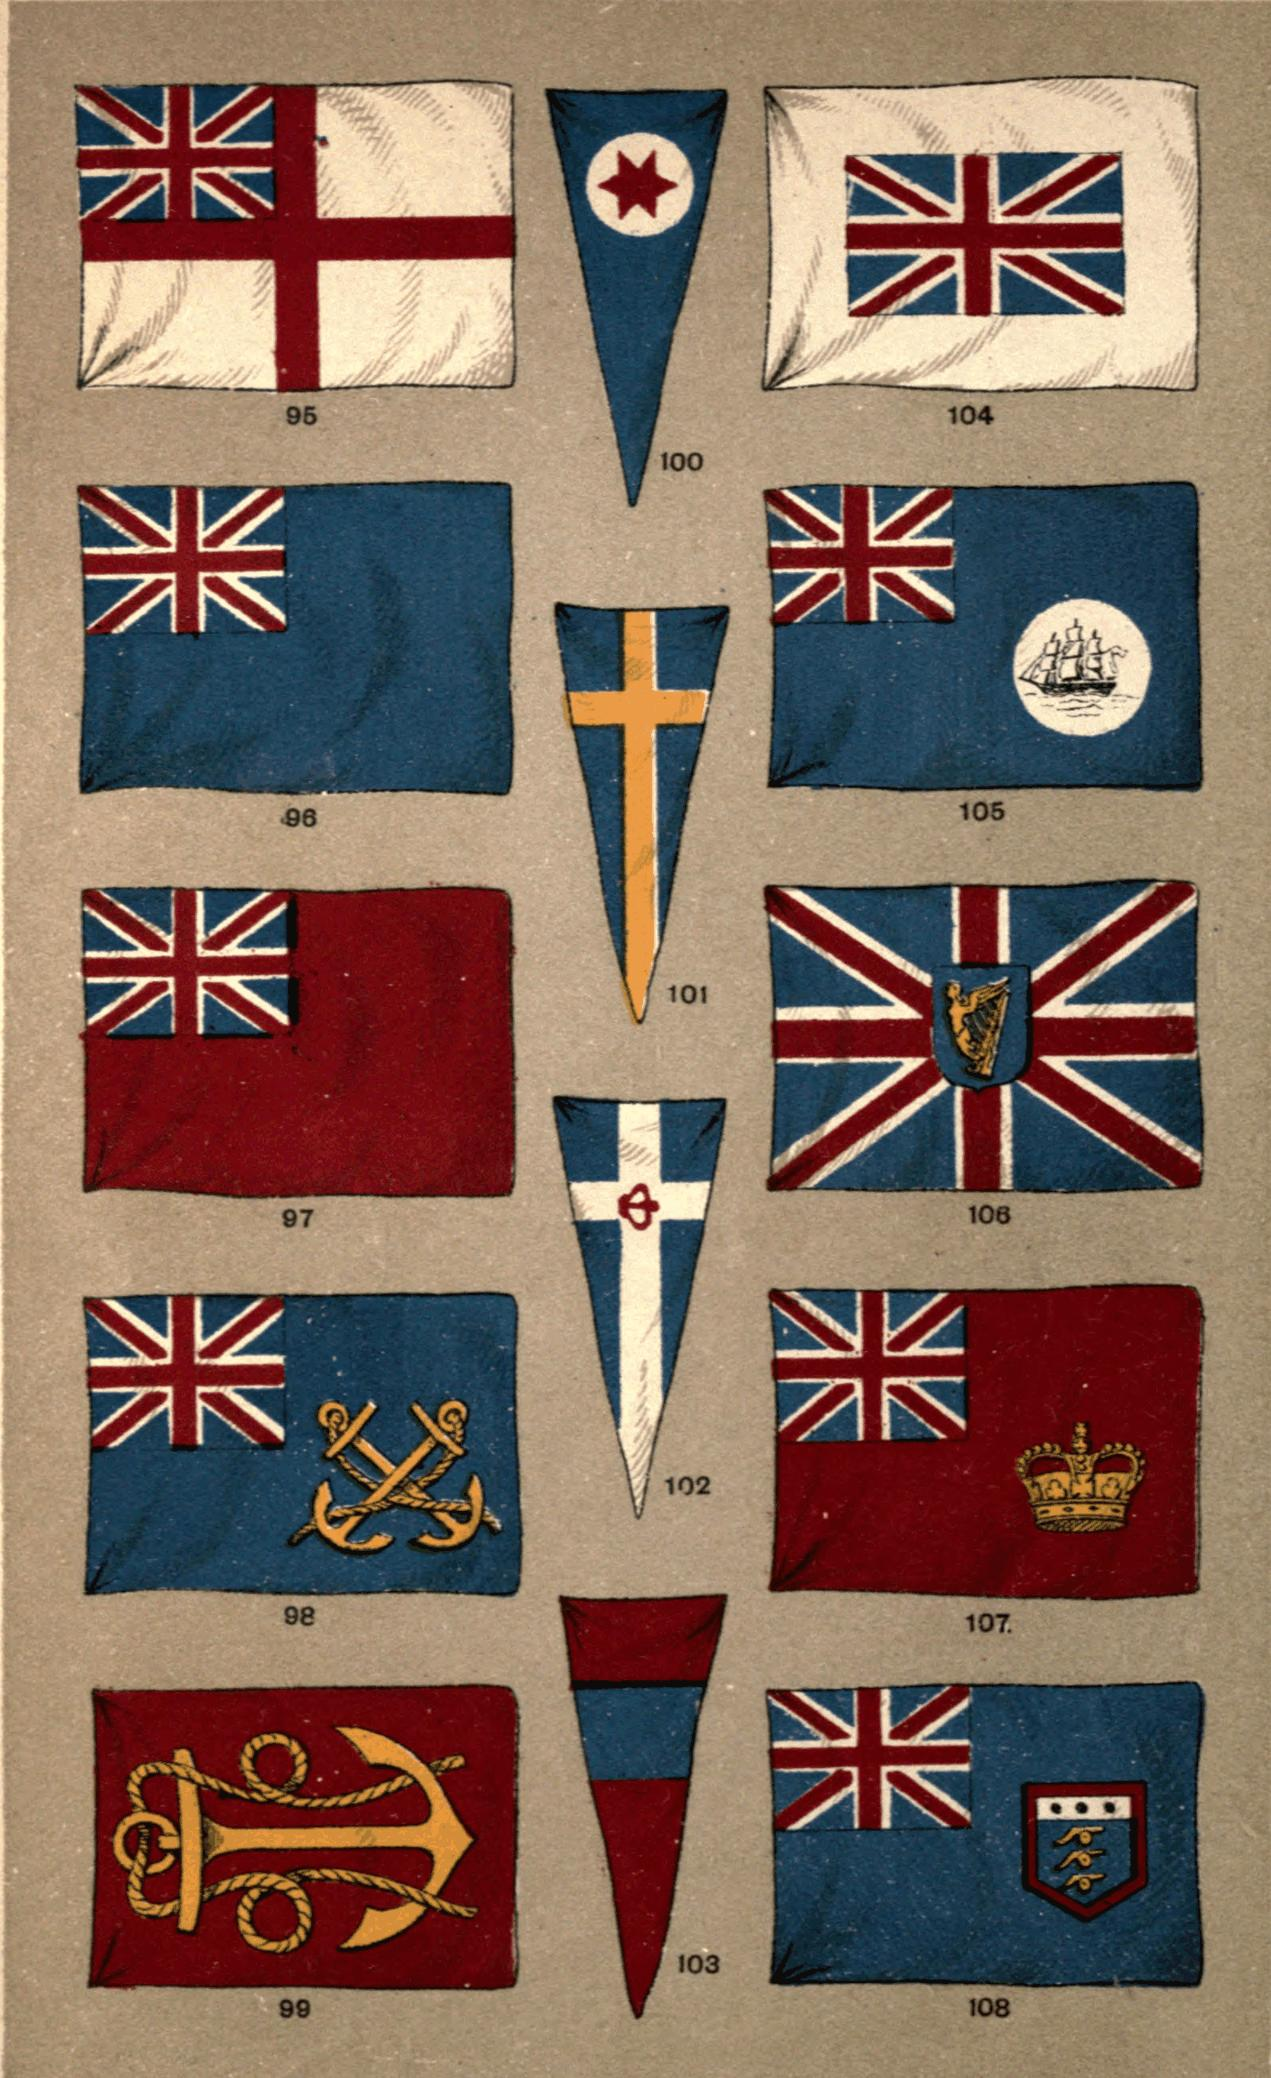 The Project Gutenberg EBook Of The Flags Of The World By